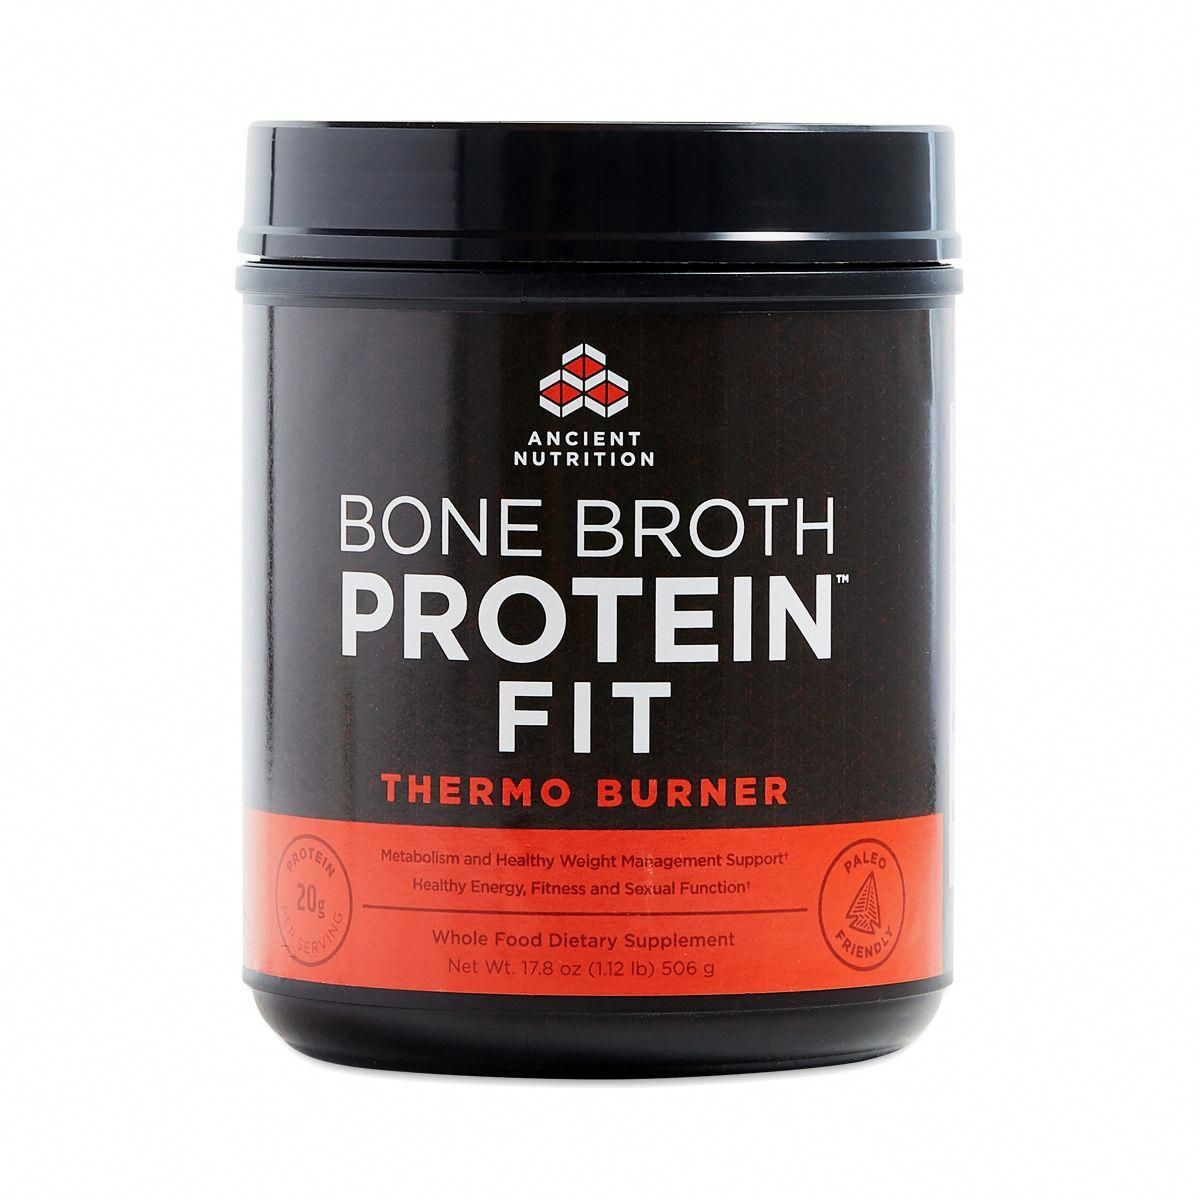 Ancient nutrition bone broth protein fit thermo burner